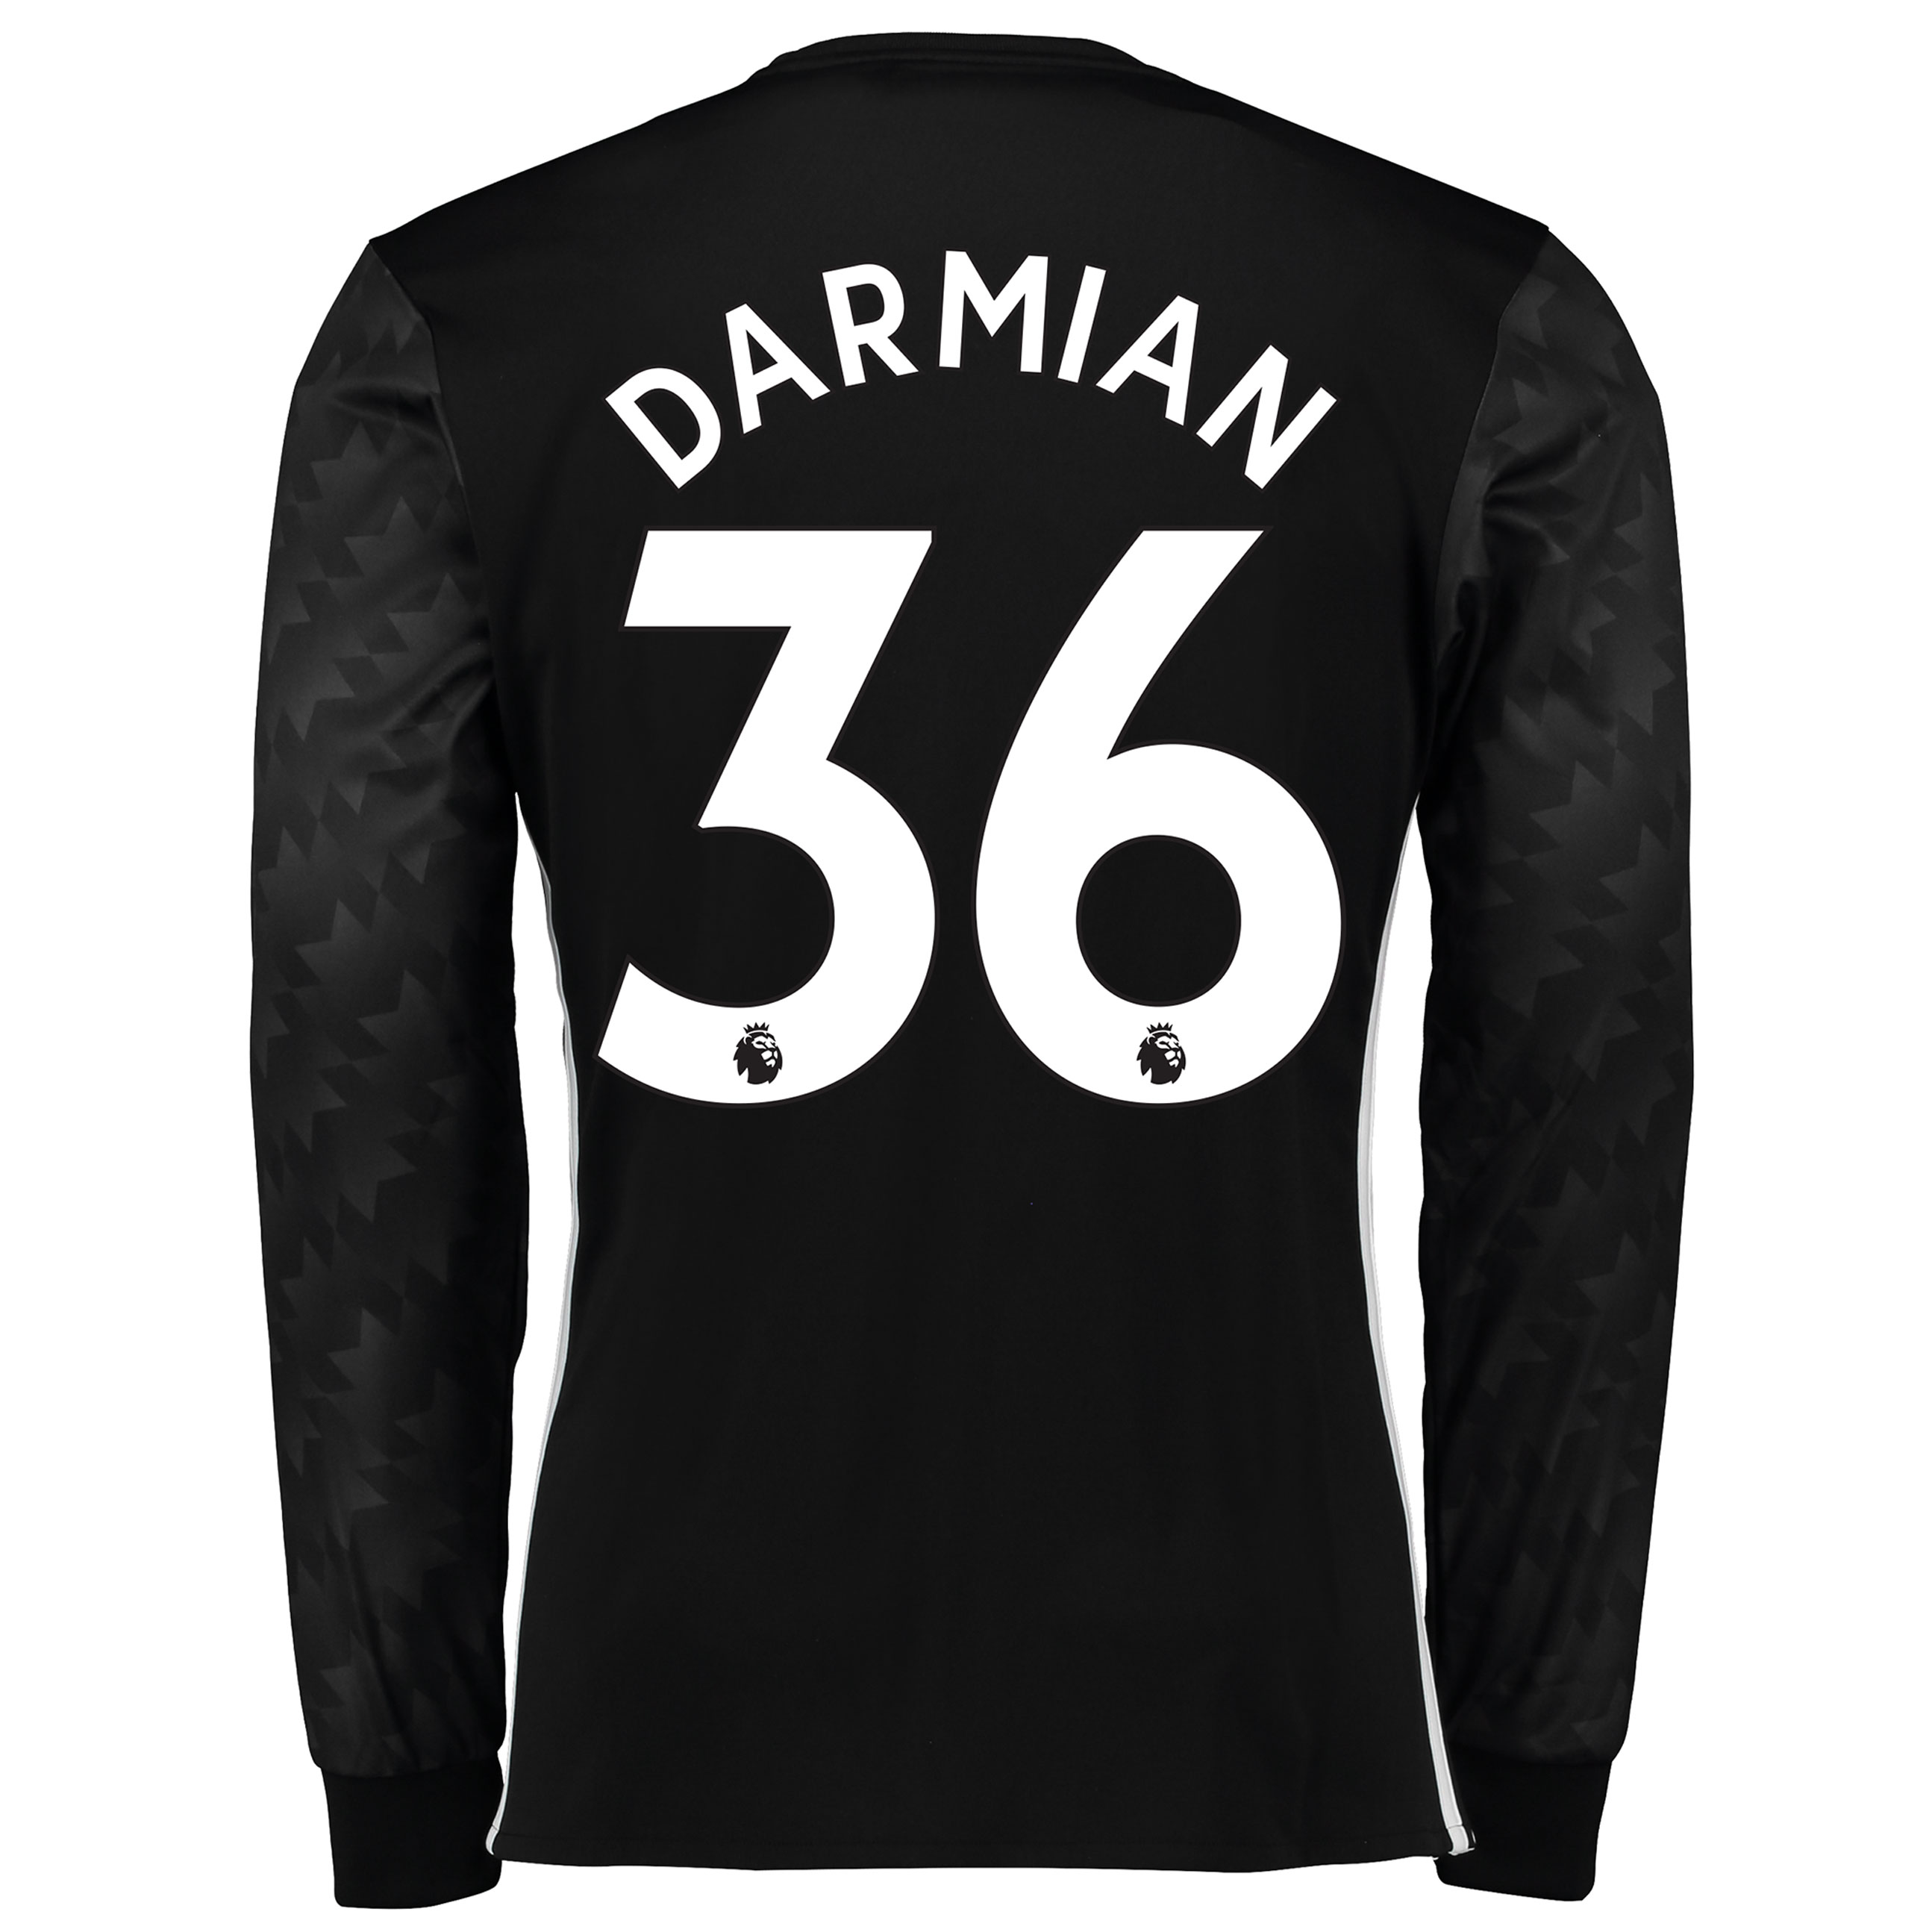 Manchester United Away Shirt 2017-18 - Long Sleeve with Darmian 36 pri